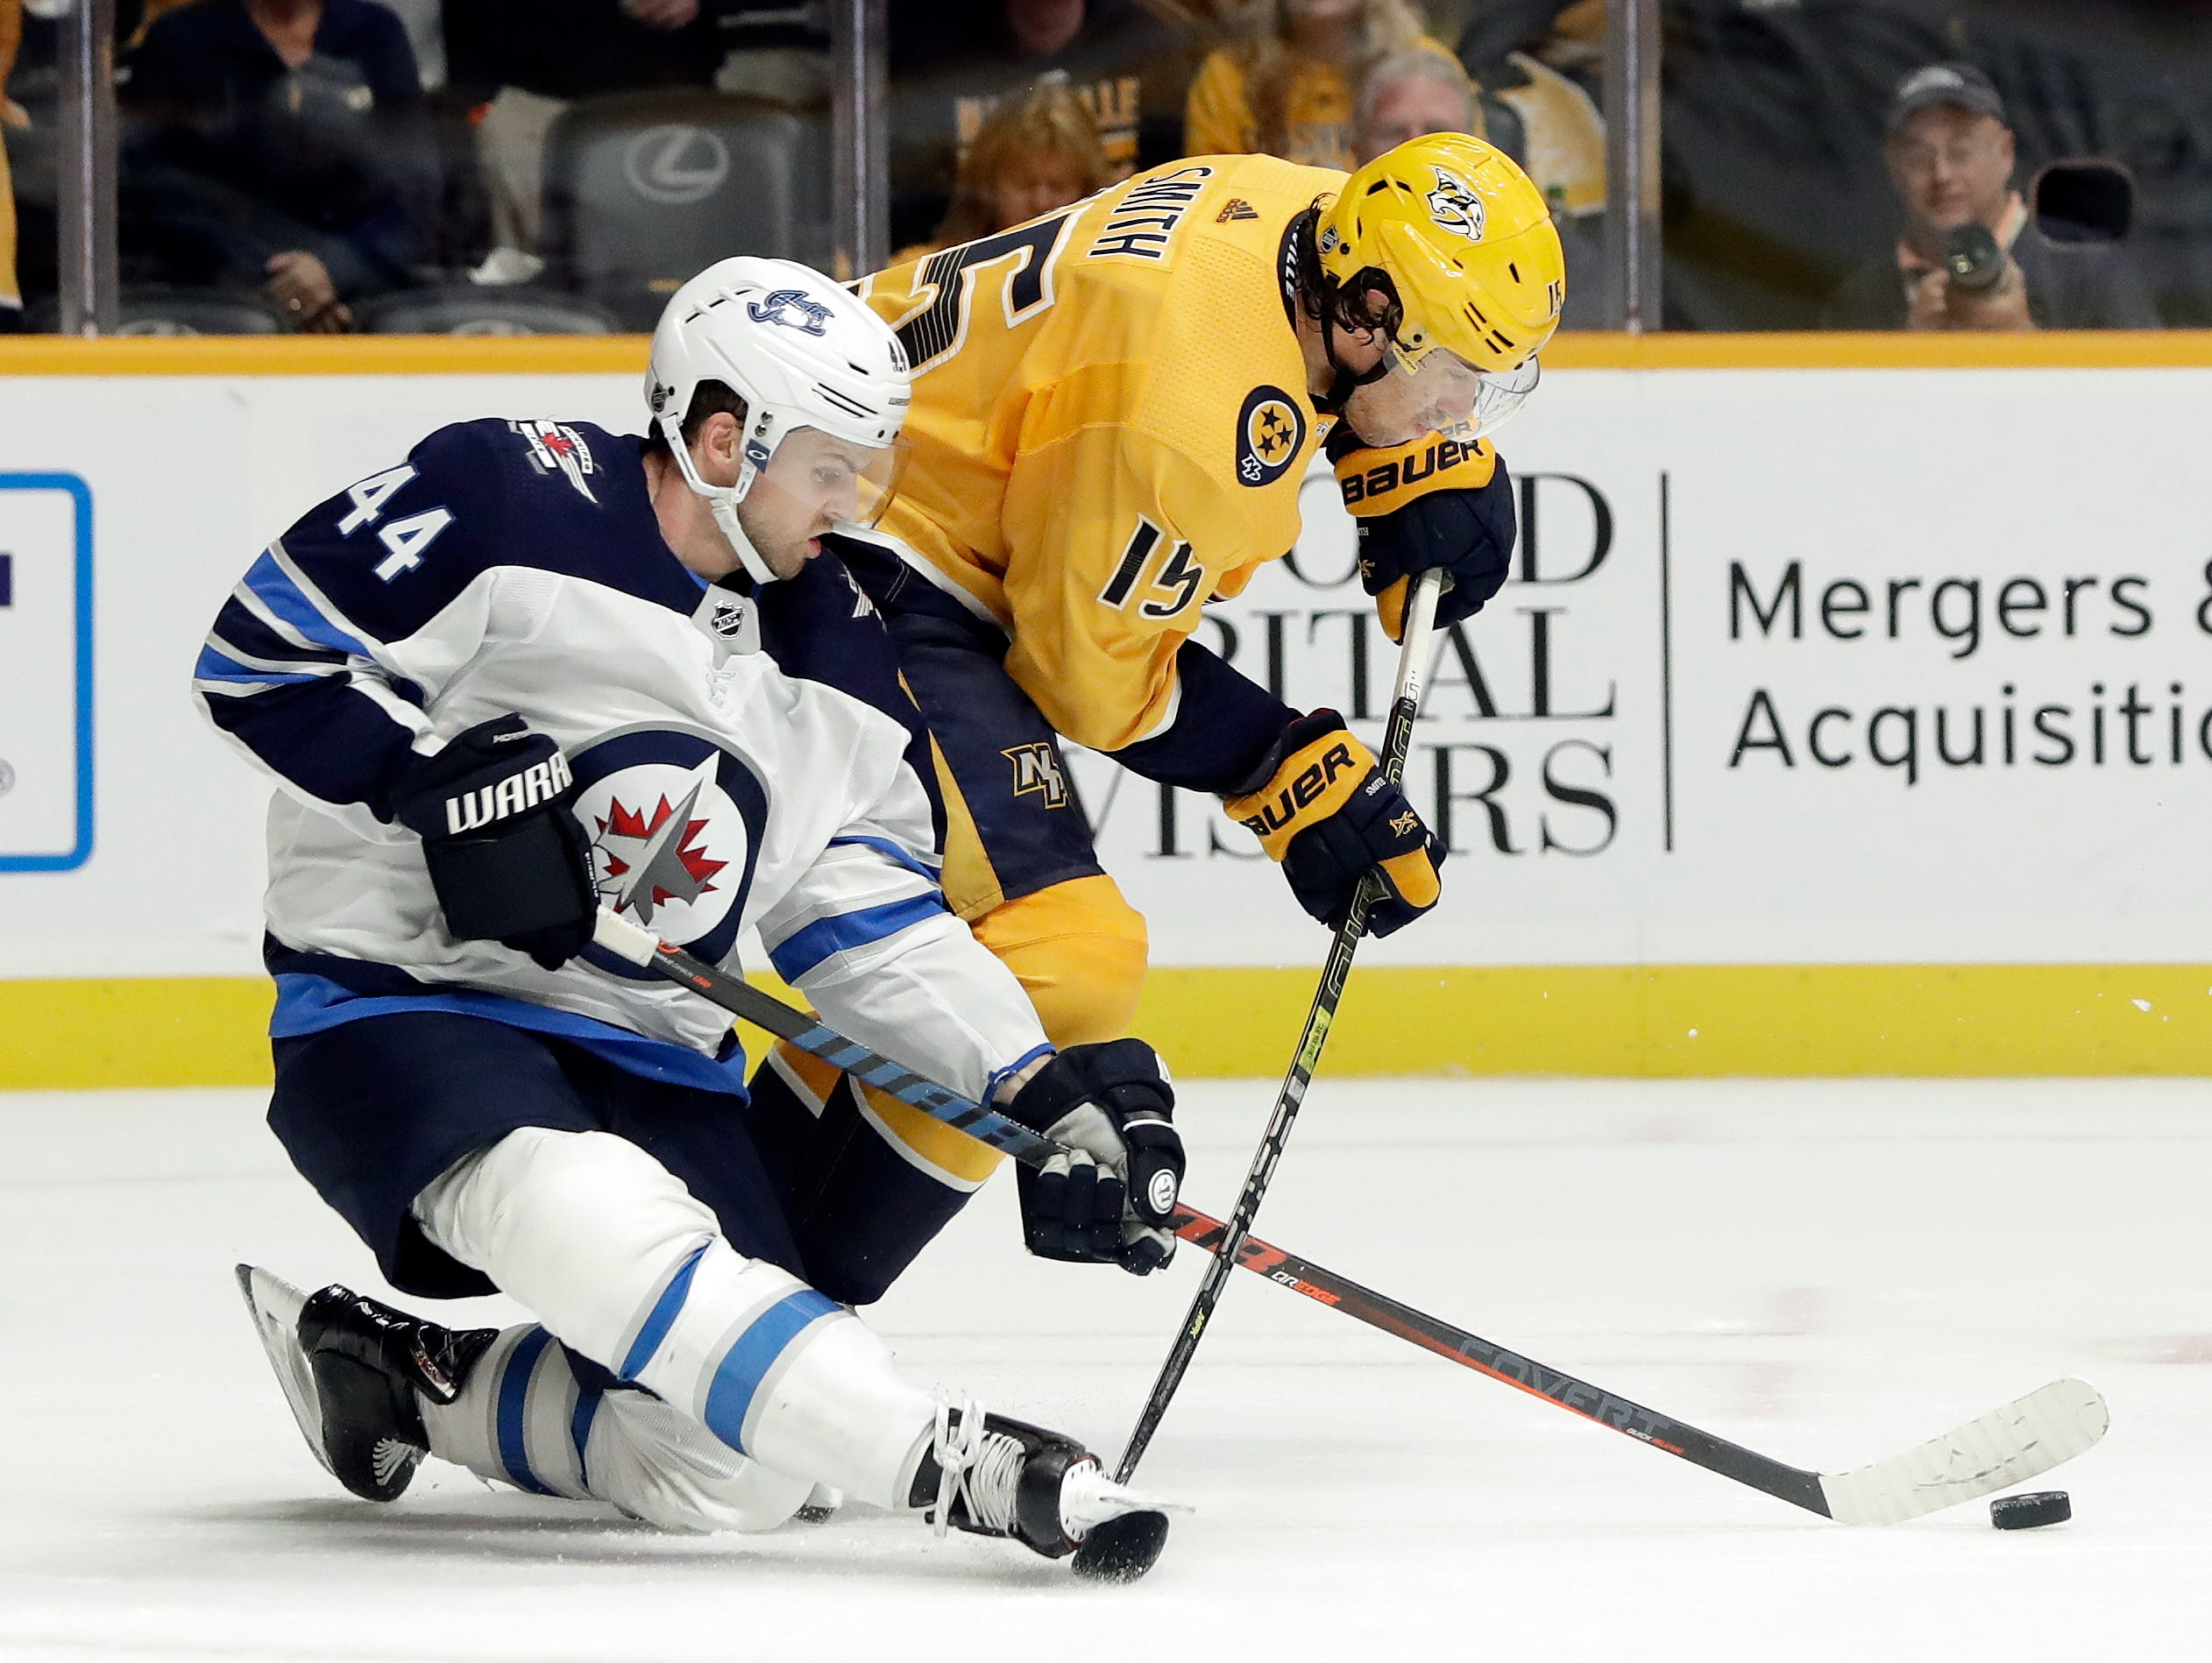 Rinne leads Predators over Jets 3-0